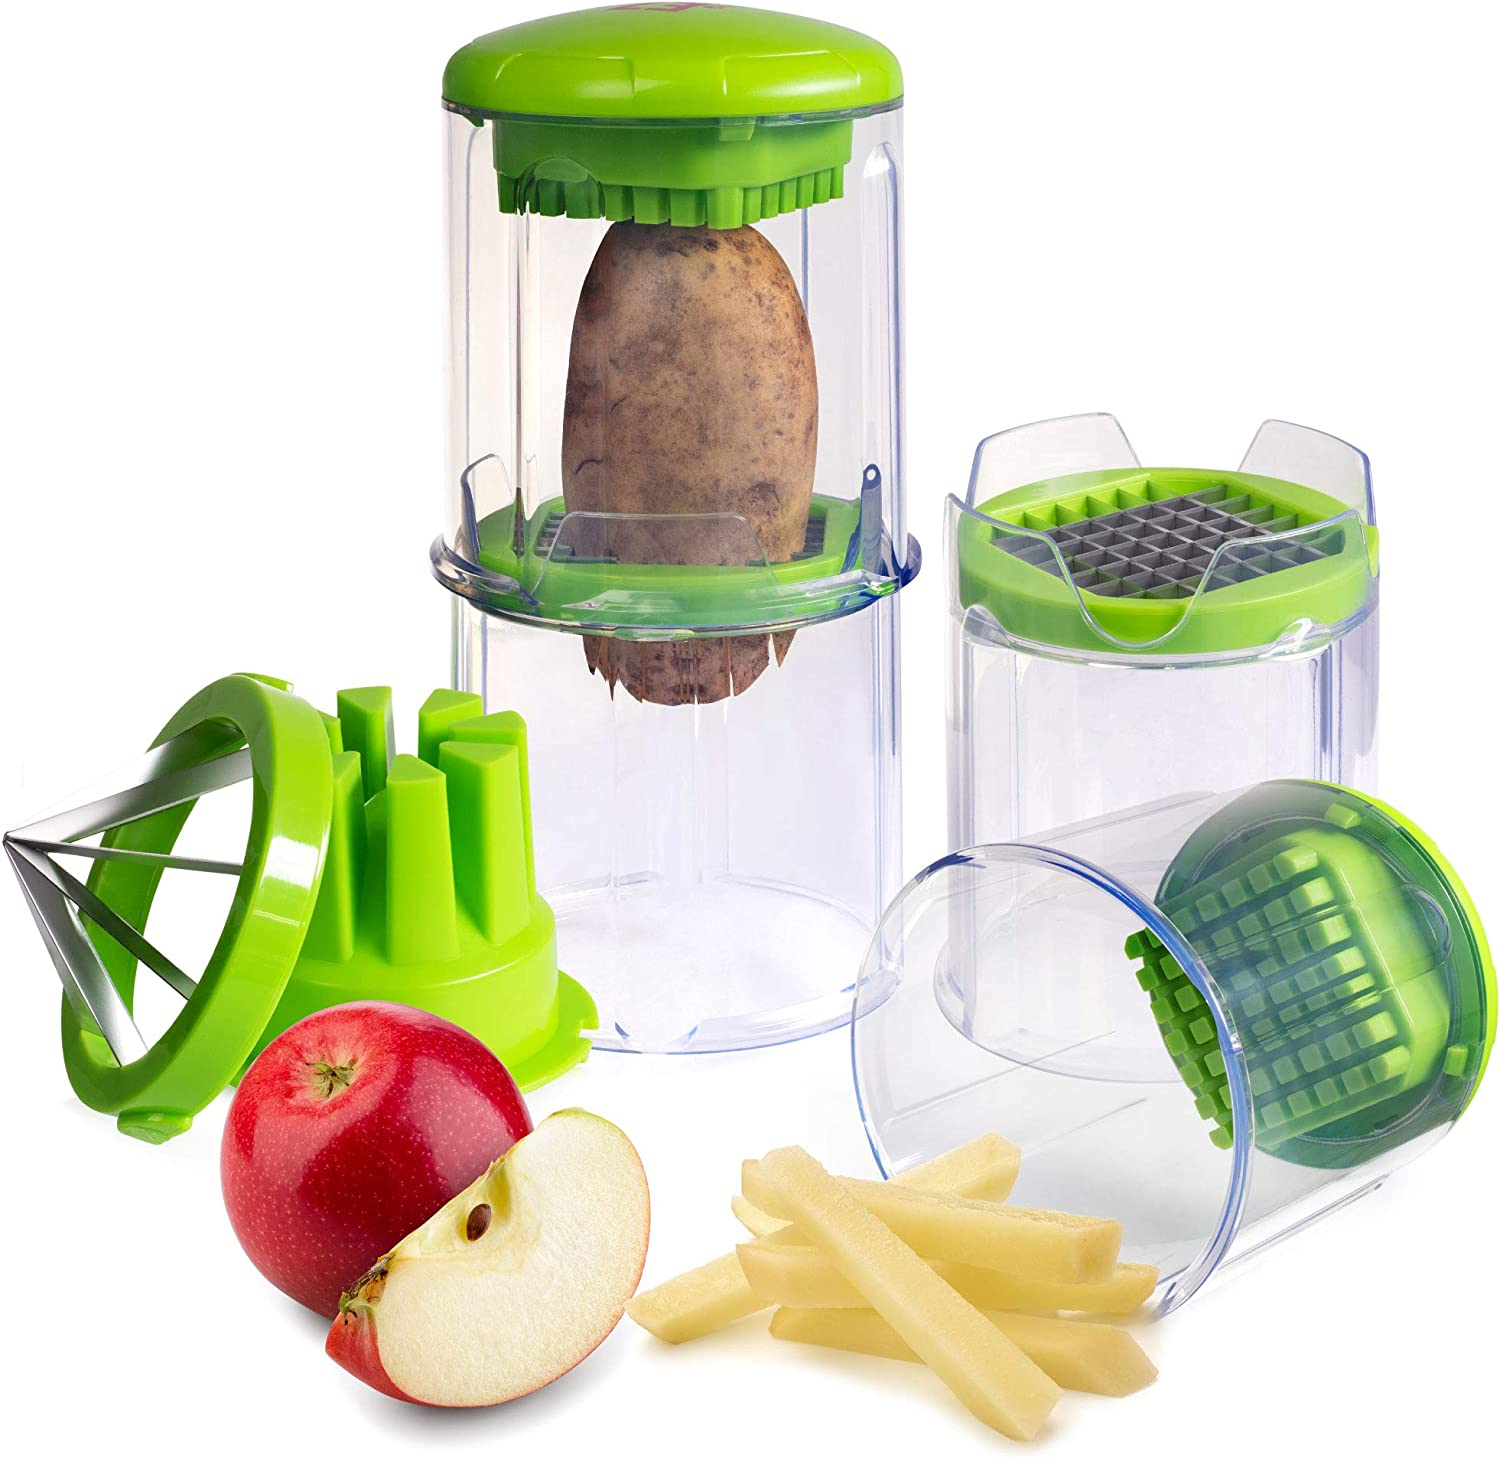 EZFries 2.0 French Fry Vegetable Cutter Virtually Unbreakable with Super Sharp Stainless Steel Blades, Crisp Perfect Cuts. Slices Tomatoes, Cucumber, Onion. BONUS Apple Slicer, Easy Clean & Storage